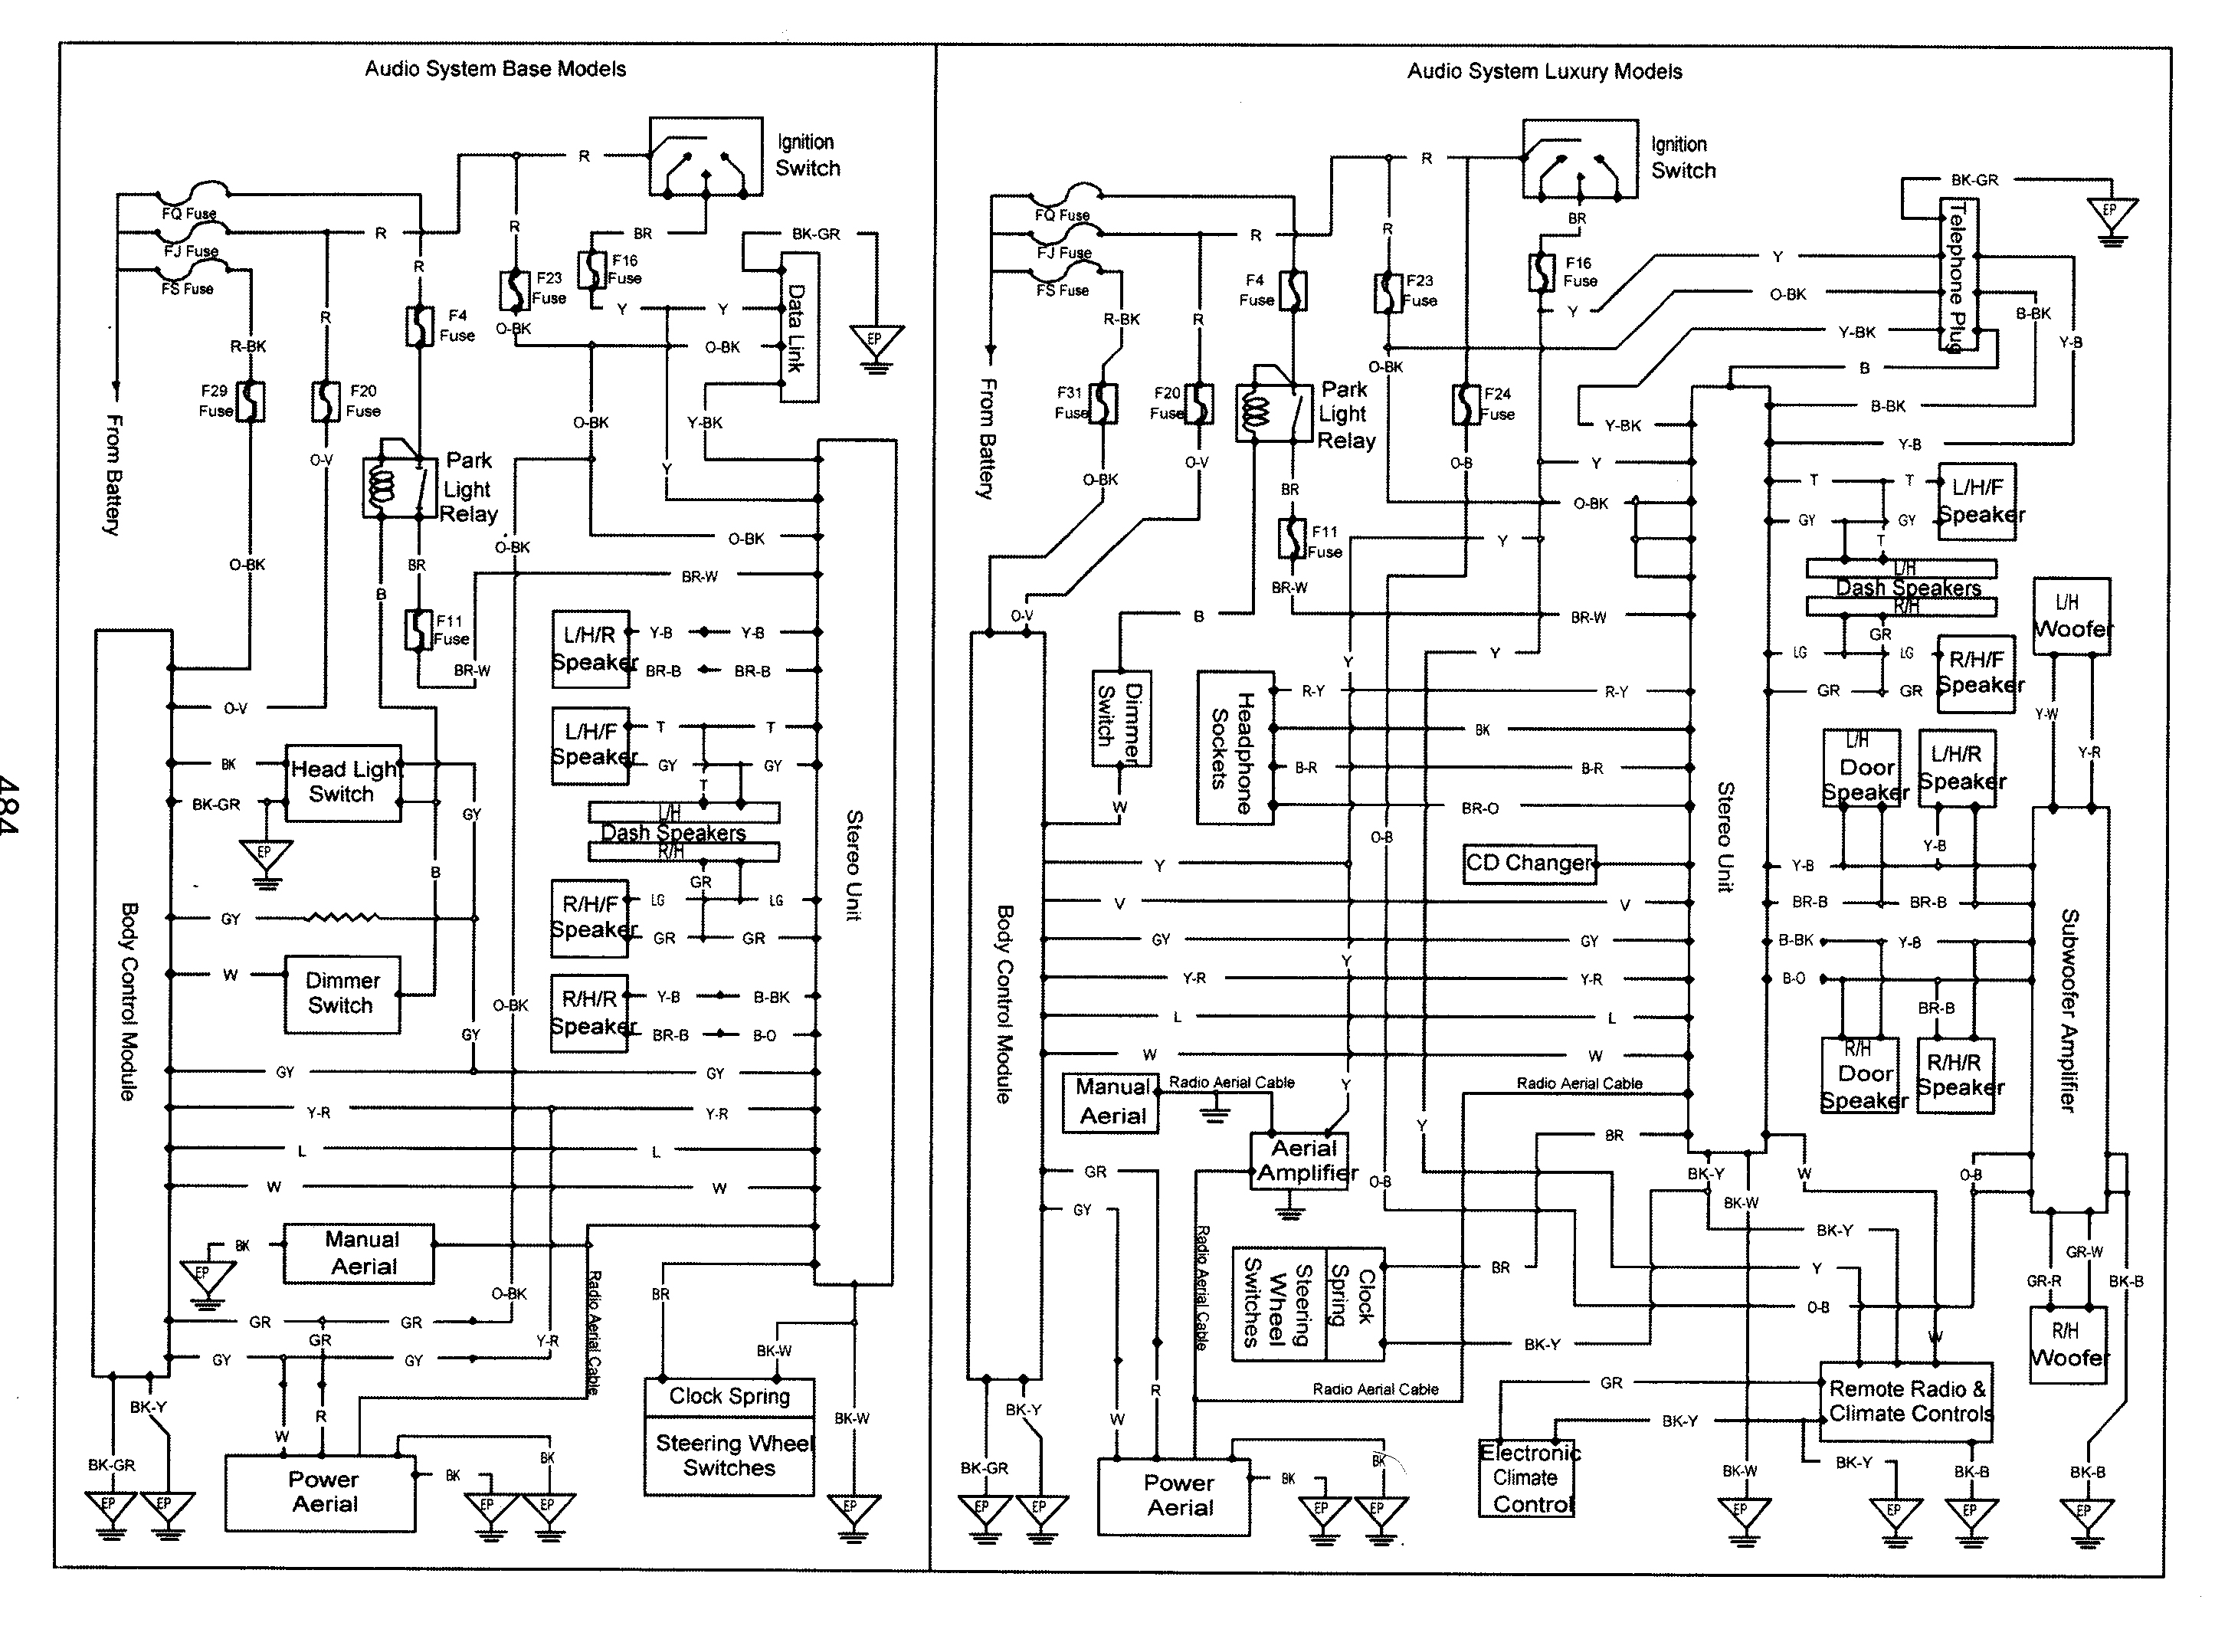 vz bcm wiring diagram   21 wiring diagram images